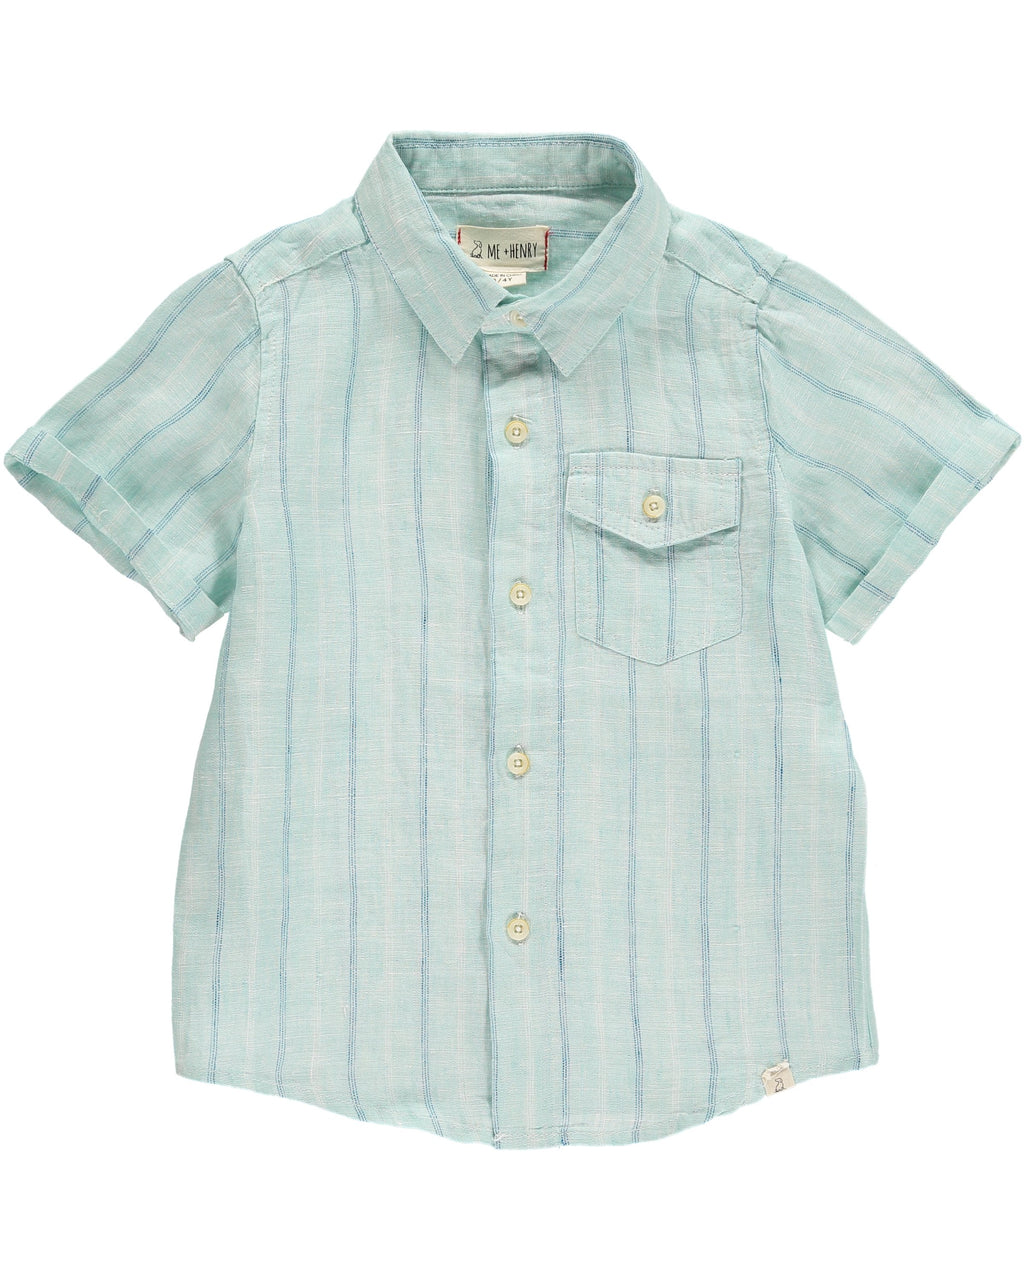 Green & Blue Striped Linen Shirt